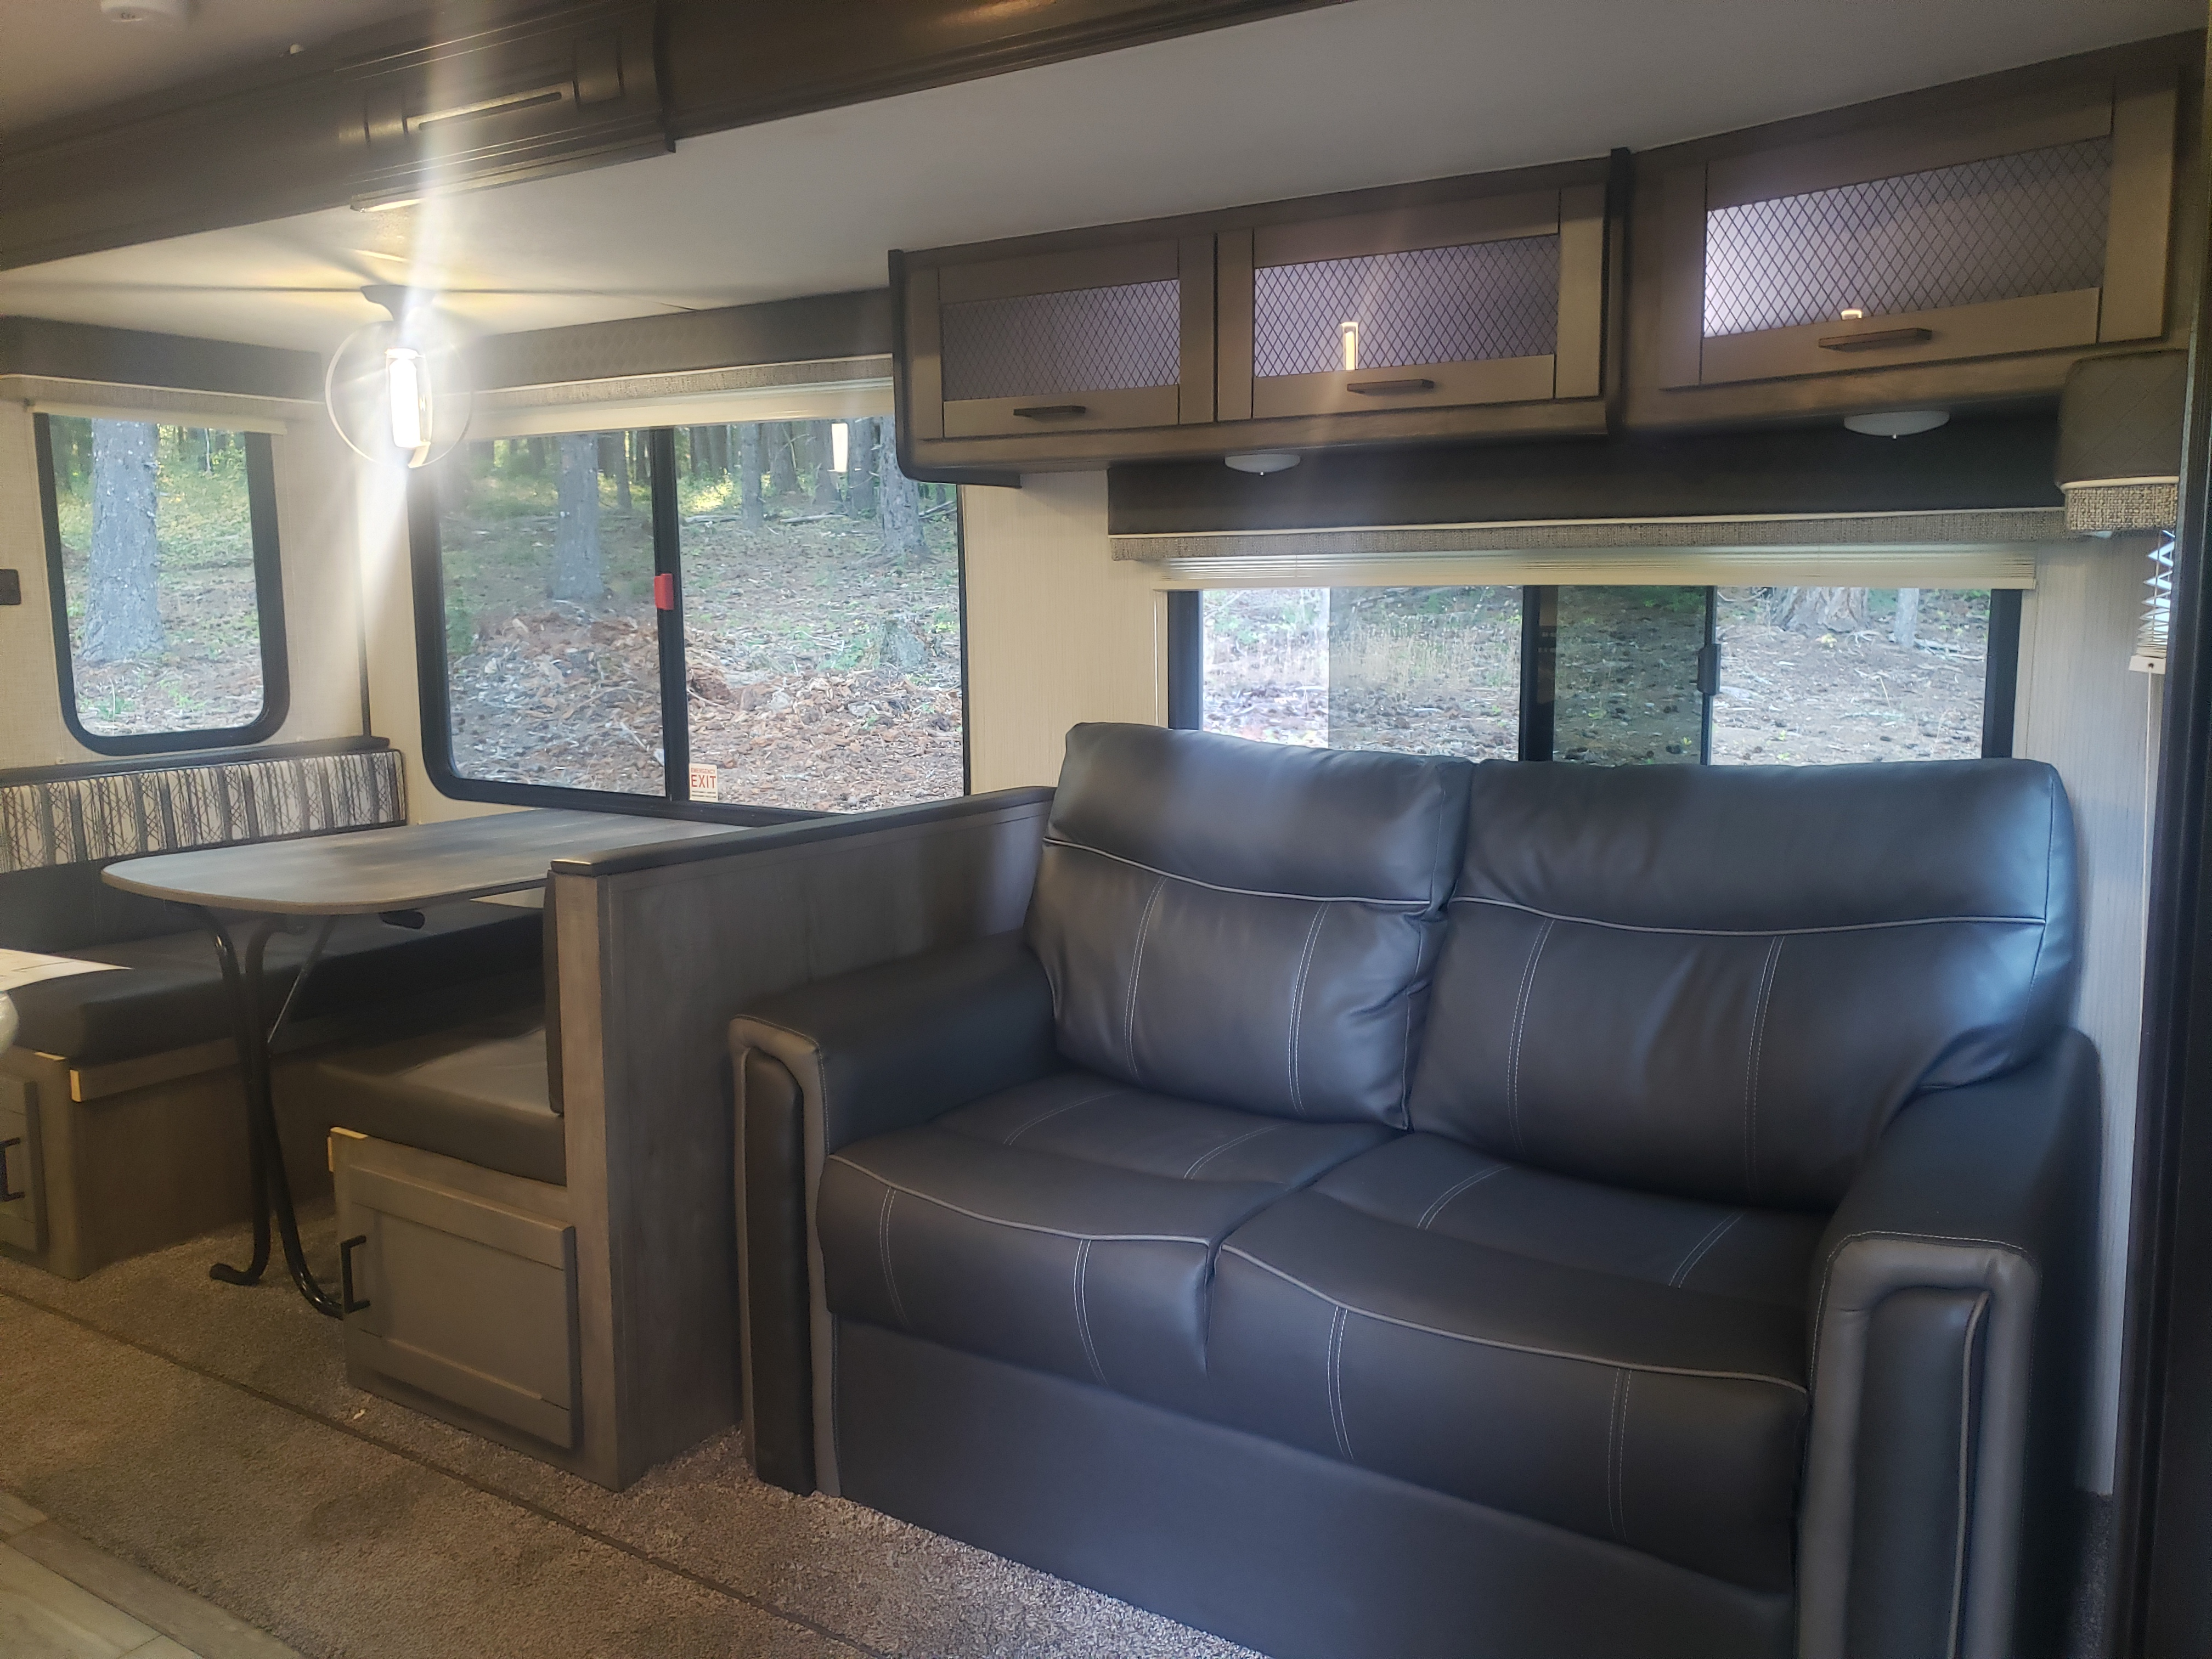 Dinette and couch convert to sleeping areas. Heartland North Trail 2020